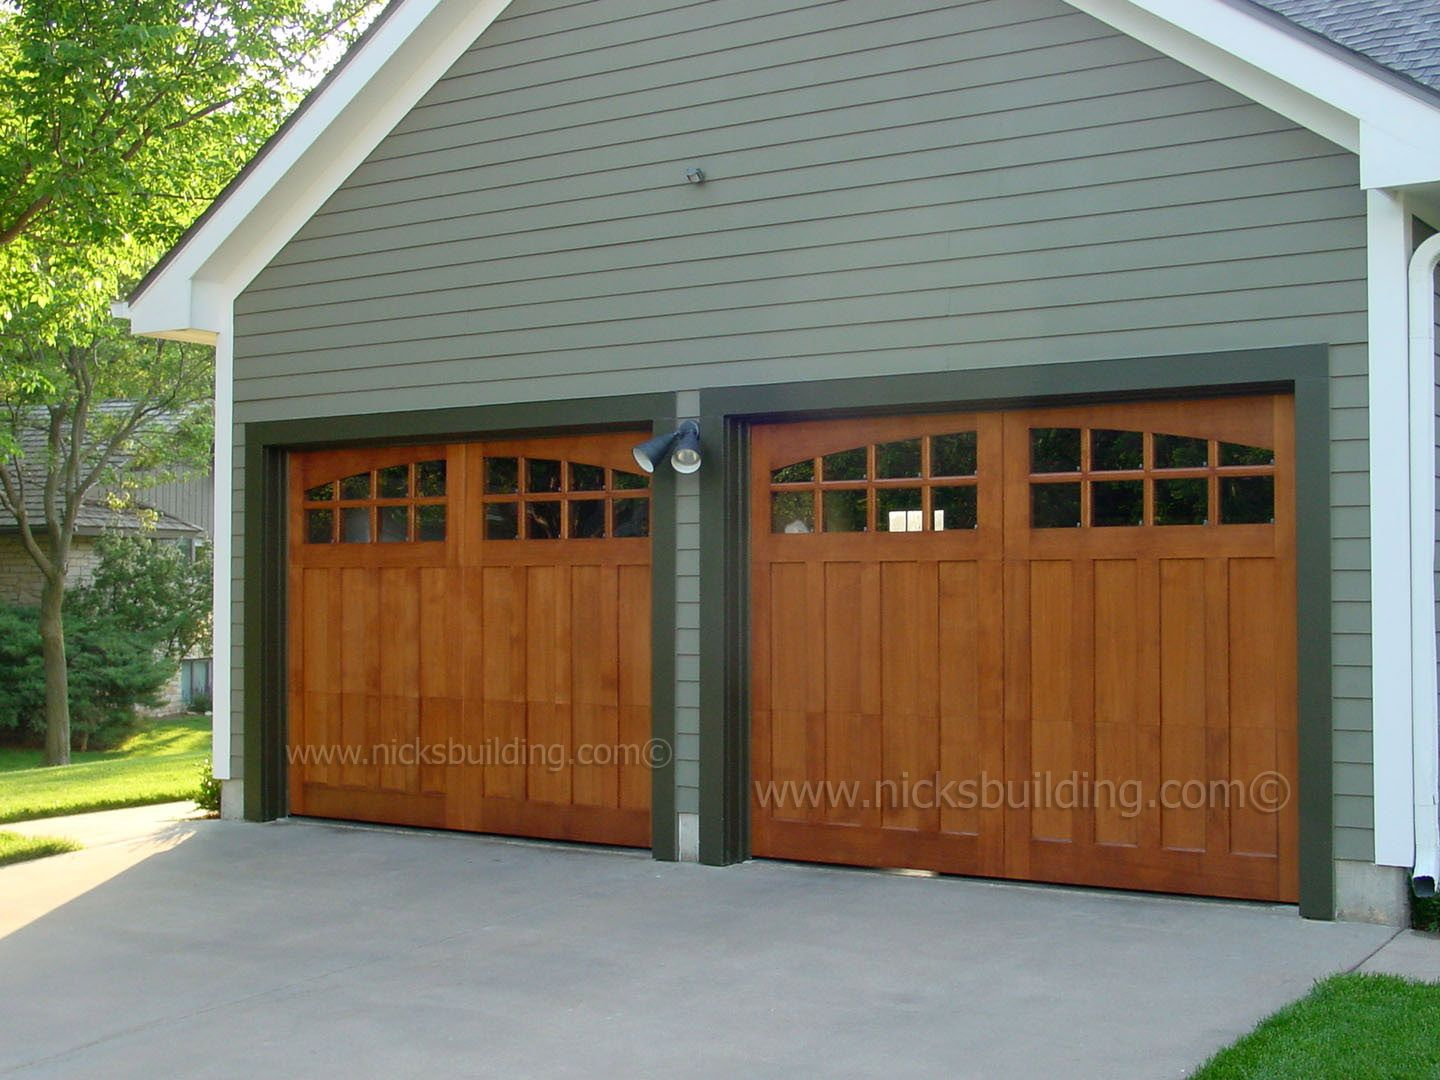 Garage door interior trim - Wood Garage Doors Stable Style Garage Doors Garage Door With Glass Brown Door